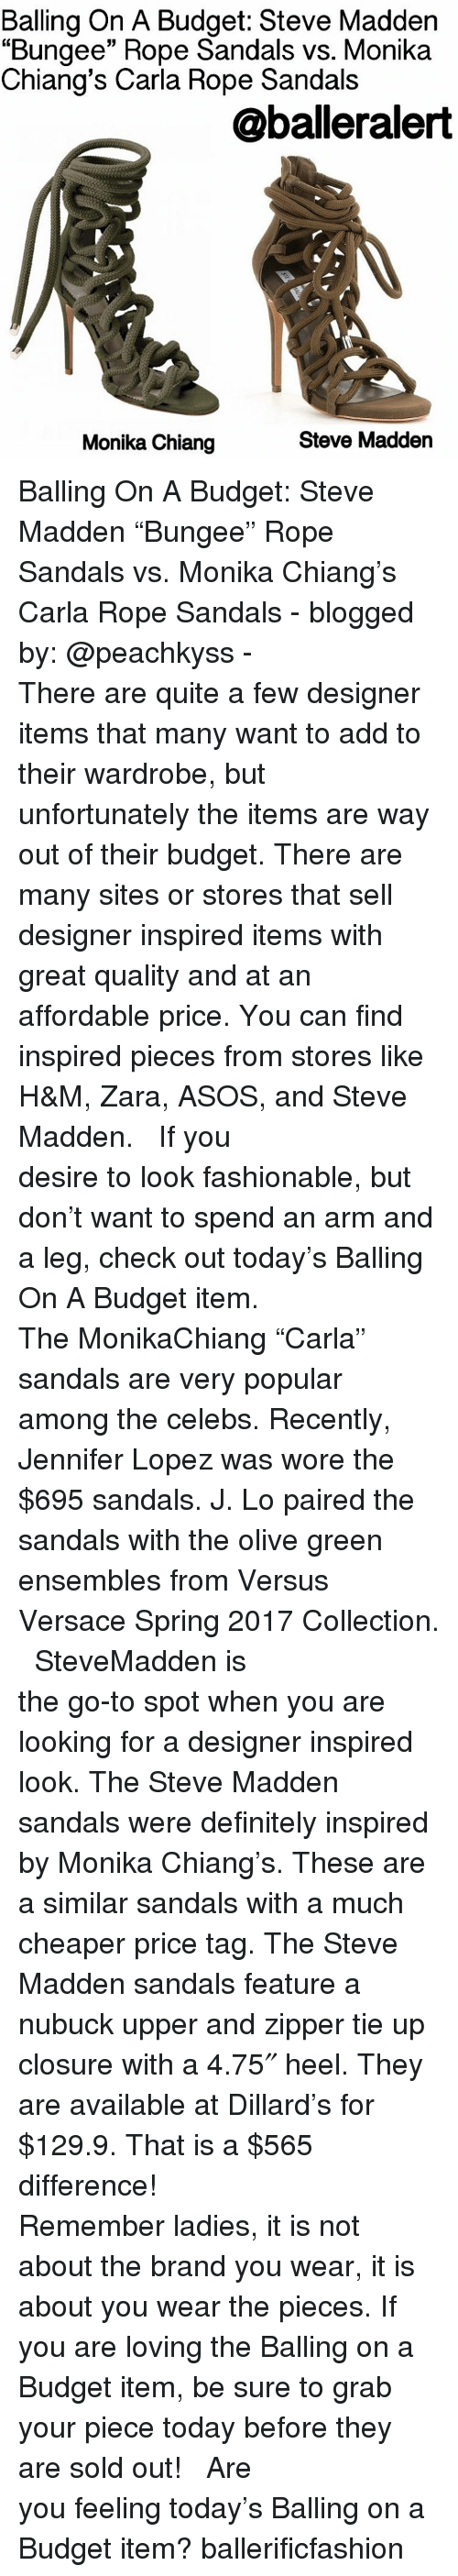 "Jennifer Lopez: Balling On A Budget: Steve Madden  ""Bungee"" Rope Sandals vs. Monika  Chiang's Carla Rope Sandals  @balleralert  Steve Madden  Monika Chiang Balling On A Budget: Steve Madden ""Bungee"" Rope Sandals vs. Monika Chiang's Carla Rope Sandals - blogged by: @peachkyss - ⠀⠀⠀⠀⠀⠀⠀⠀⠀ ⠀⠀⠀⠀⠀⠀⠀⠀⠀ There are quite a few designer items that many want to add to their wardrobe, but unfortunately the items are way out of their budget. There are many sites or stores that sell designer inspired items with great quality and at an affordable price. You can find inspired pieces from stores like H&M, Zara, ASOS, and Steve Madden. ⠀⠀⠀⠀⠀⠀⠀⠀⠀ ⠀⠀⠀⠀⠀⠀⠀⠀⠀ If you desire to look fashionable, but don't want to spend an arm and a leg, check out today's Balling On A Budget item. ⠀⠀⠀⠀⠀⠀⠀⠀⠀ ⠀⠀⠀⠀⠀⠀⠀⠀⠀ The MonikaChiang ""Carla"" sandals are very popular among the celebs. Recently, Jennifer Lopez was wore the $695 sandals. J. Lo paired the sandals with the olive green ensembles from Versus Versace Spring 2017 Collection. ⠀⠀⠀⠀⠀⠀⠀⠀⠀ ⠀⠀⠀⠀⠀⠀⠀⠀⠀ SteveMadden is the go-to spot when you are looking for a designer inspired look. The Steve Madden sandals were definitely inspired by Monika Chiang's. These are a similar sandals with a much cheaper price tag. The Steve Madden sandals feature a nubuck upper and zipper tie up closure with a 4.75″ heel. They are available at Dillard's for $129.9. That is a $565 difference! ⠀⠀⠀⠀⠀⠀⠀⠀⠀ ⠀⠀⠀⠀⠀⠀⠀⠀⠀ Remember ladies, it is not about the brand you wear, it is about you wear the pieces. If you are loving the Balling on a Budget item, be sure to grab your piece today before they are sold out! ⠀⠀⠀⠀⠀⠀⠀⠀⠀ ⠀⠀⠀⠀⠀⠀⠀⠀⠀ Are you feeling today's Balling on a Budget item? ballerificfashion"